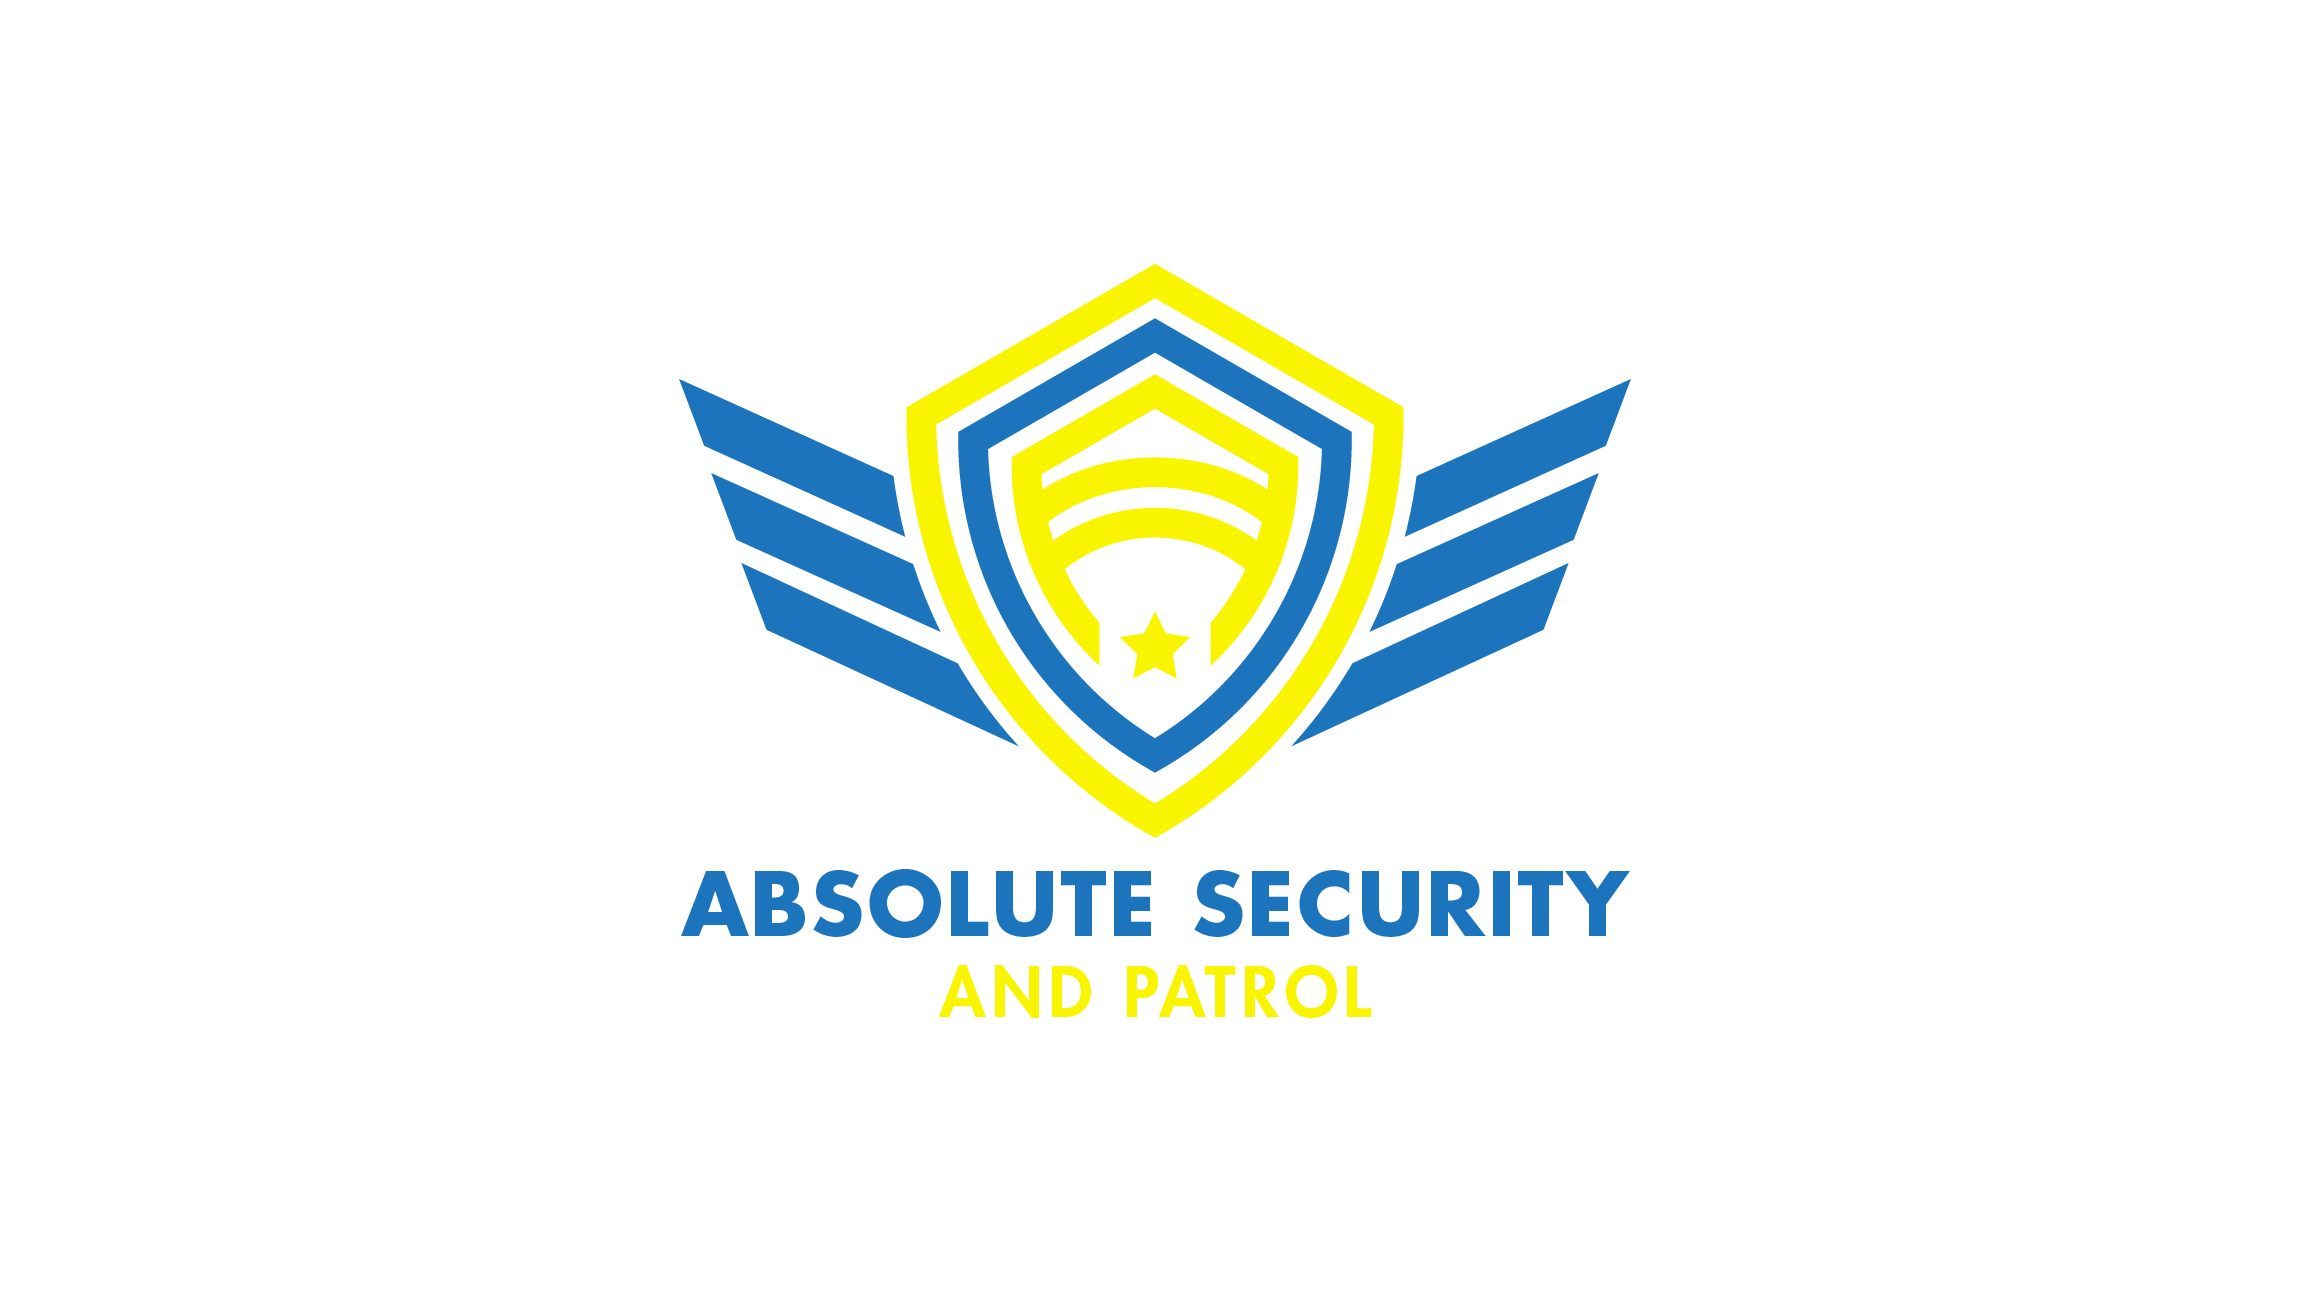 Texas Security Company, Absolute Security and Patrol, Announces New Service Areas in Arlington, Irving, Dallas, and Fort Worth 6